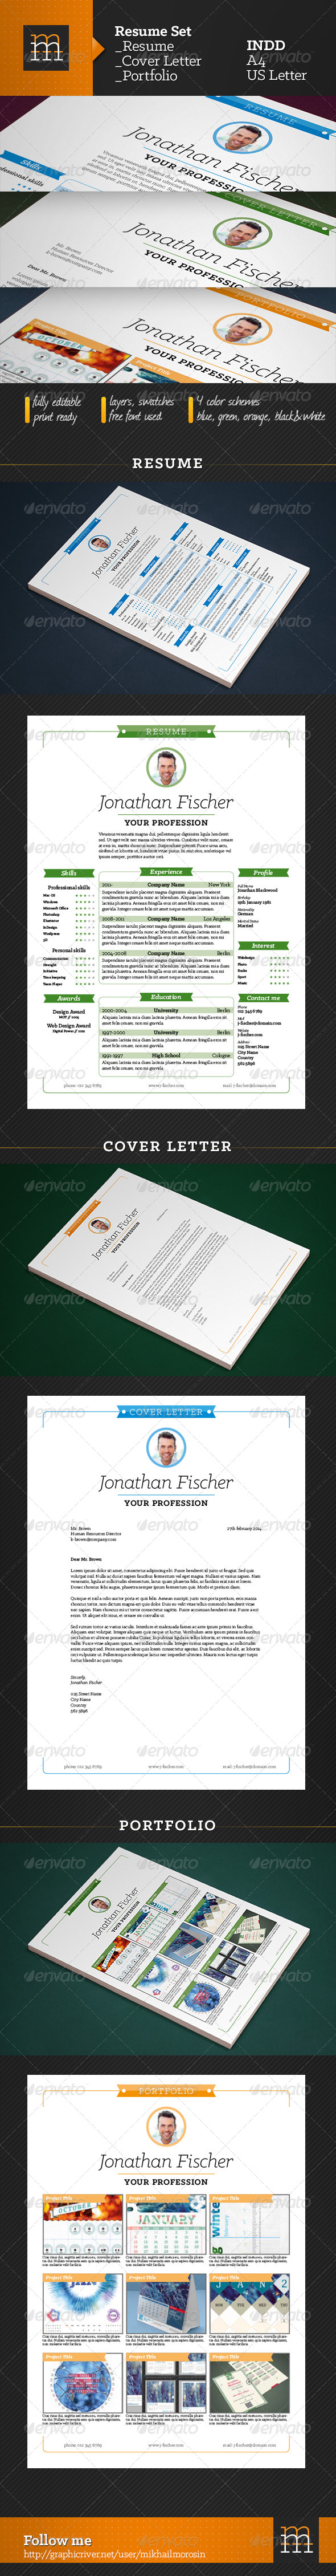 GraphicRiver Resume Set 6627113